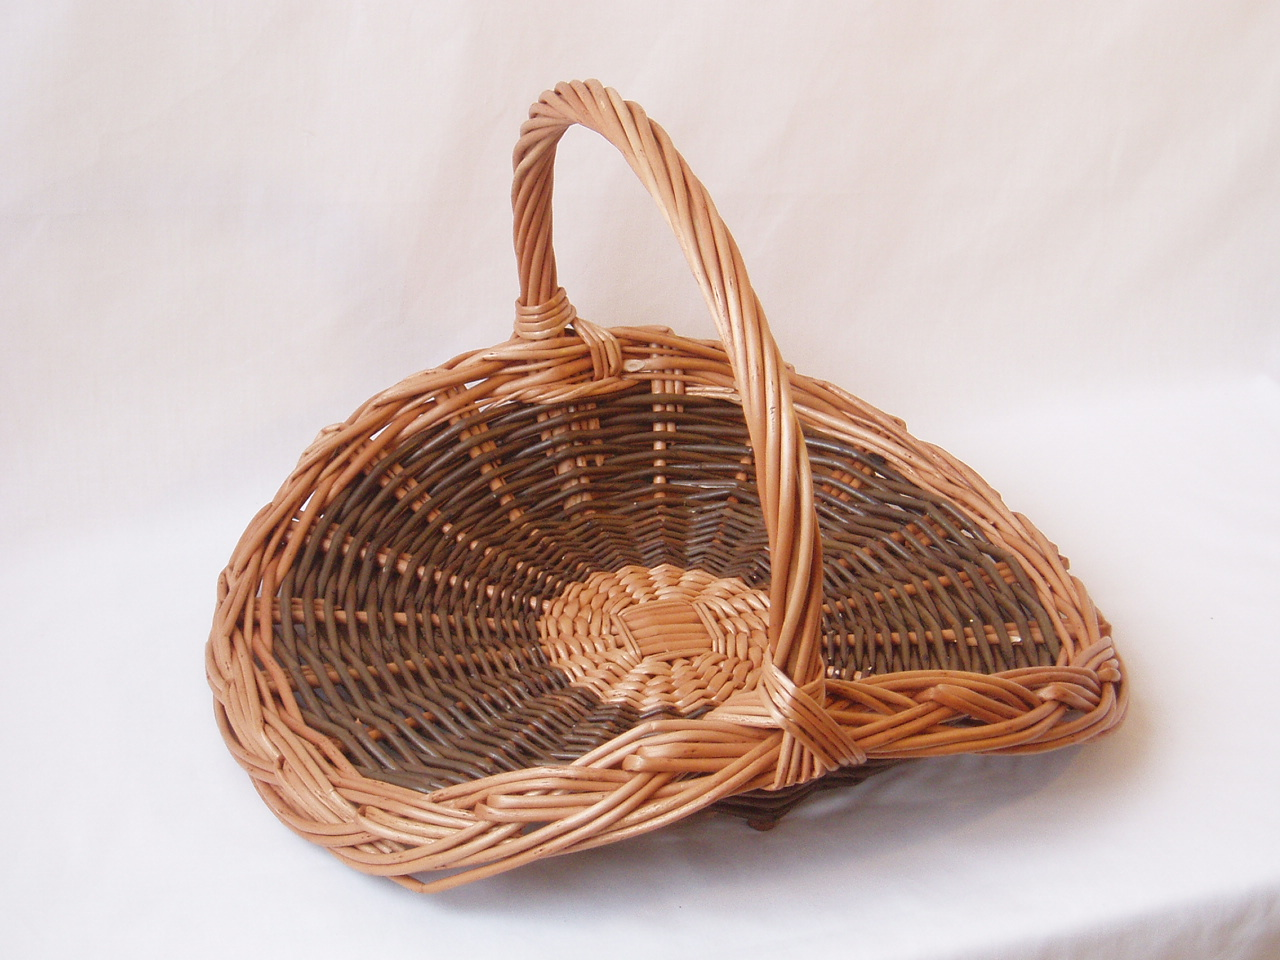 Rattan Flower Baskets : Round flower basket wicker baskets